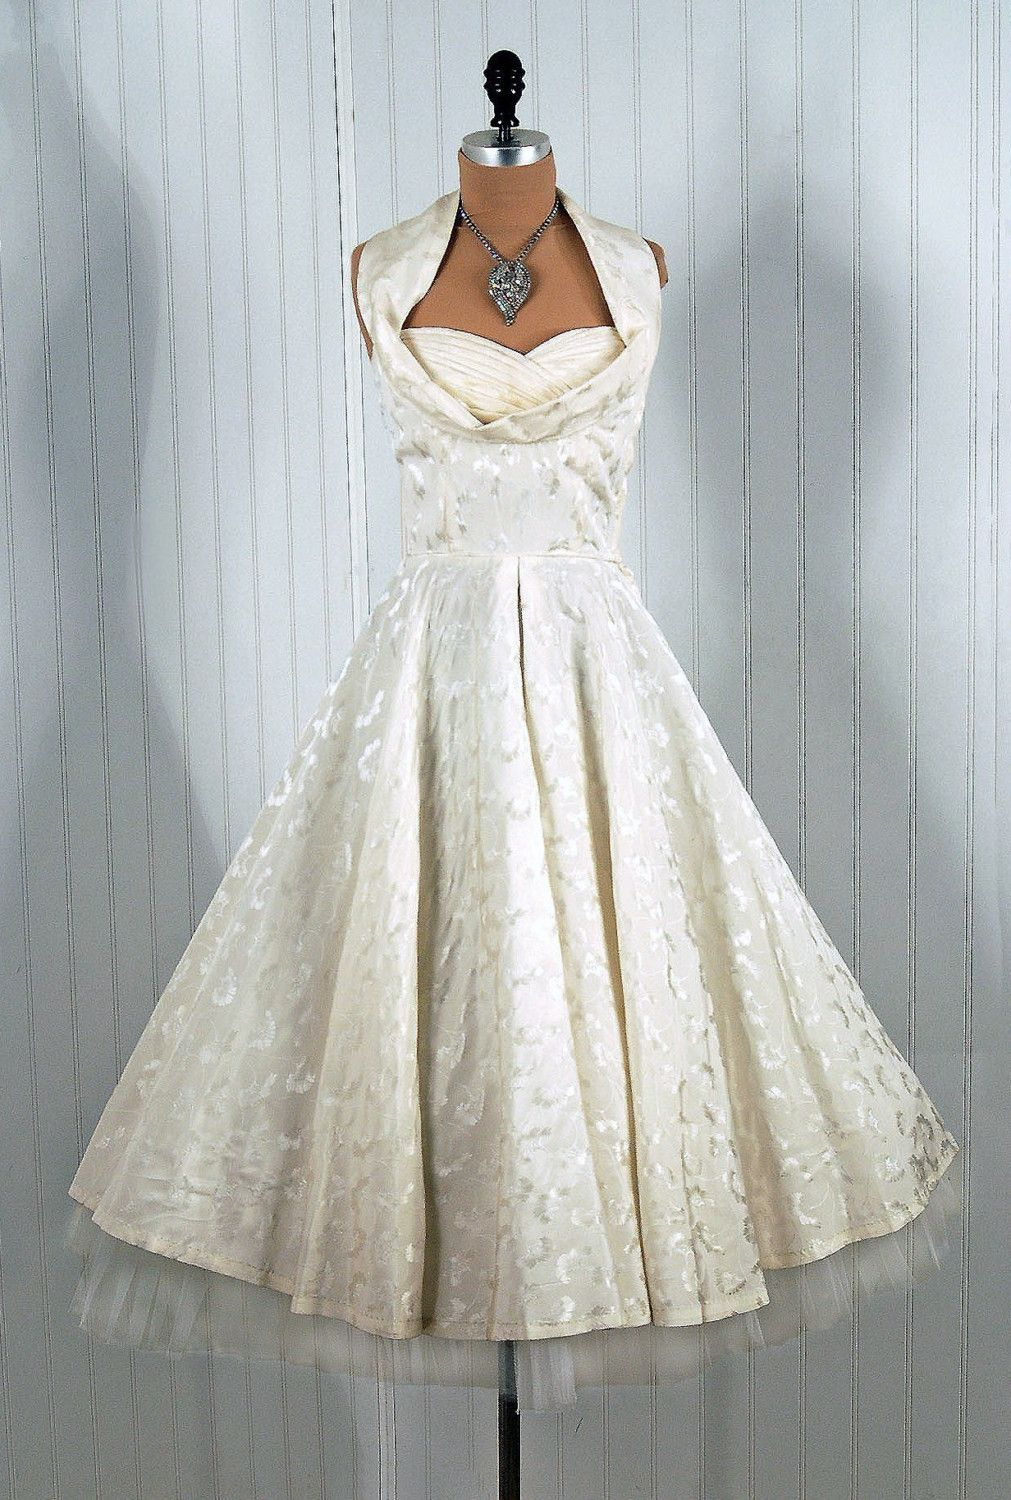 1950\'s Vintage Coquette Couture Shelf-Bust Halter White party dress ...